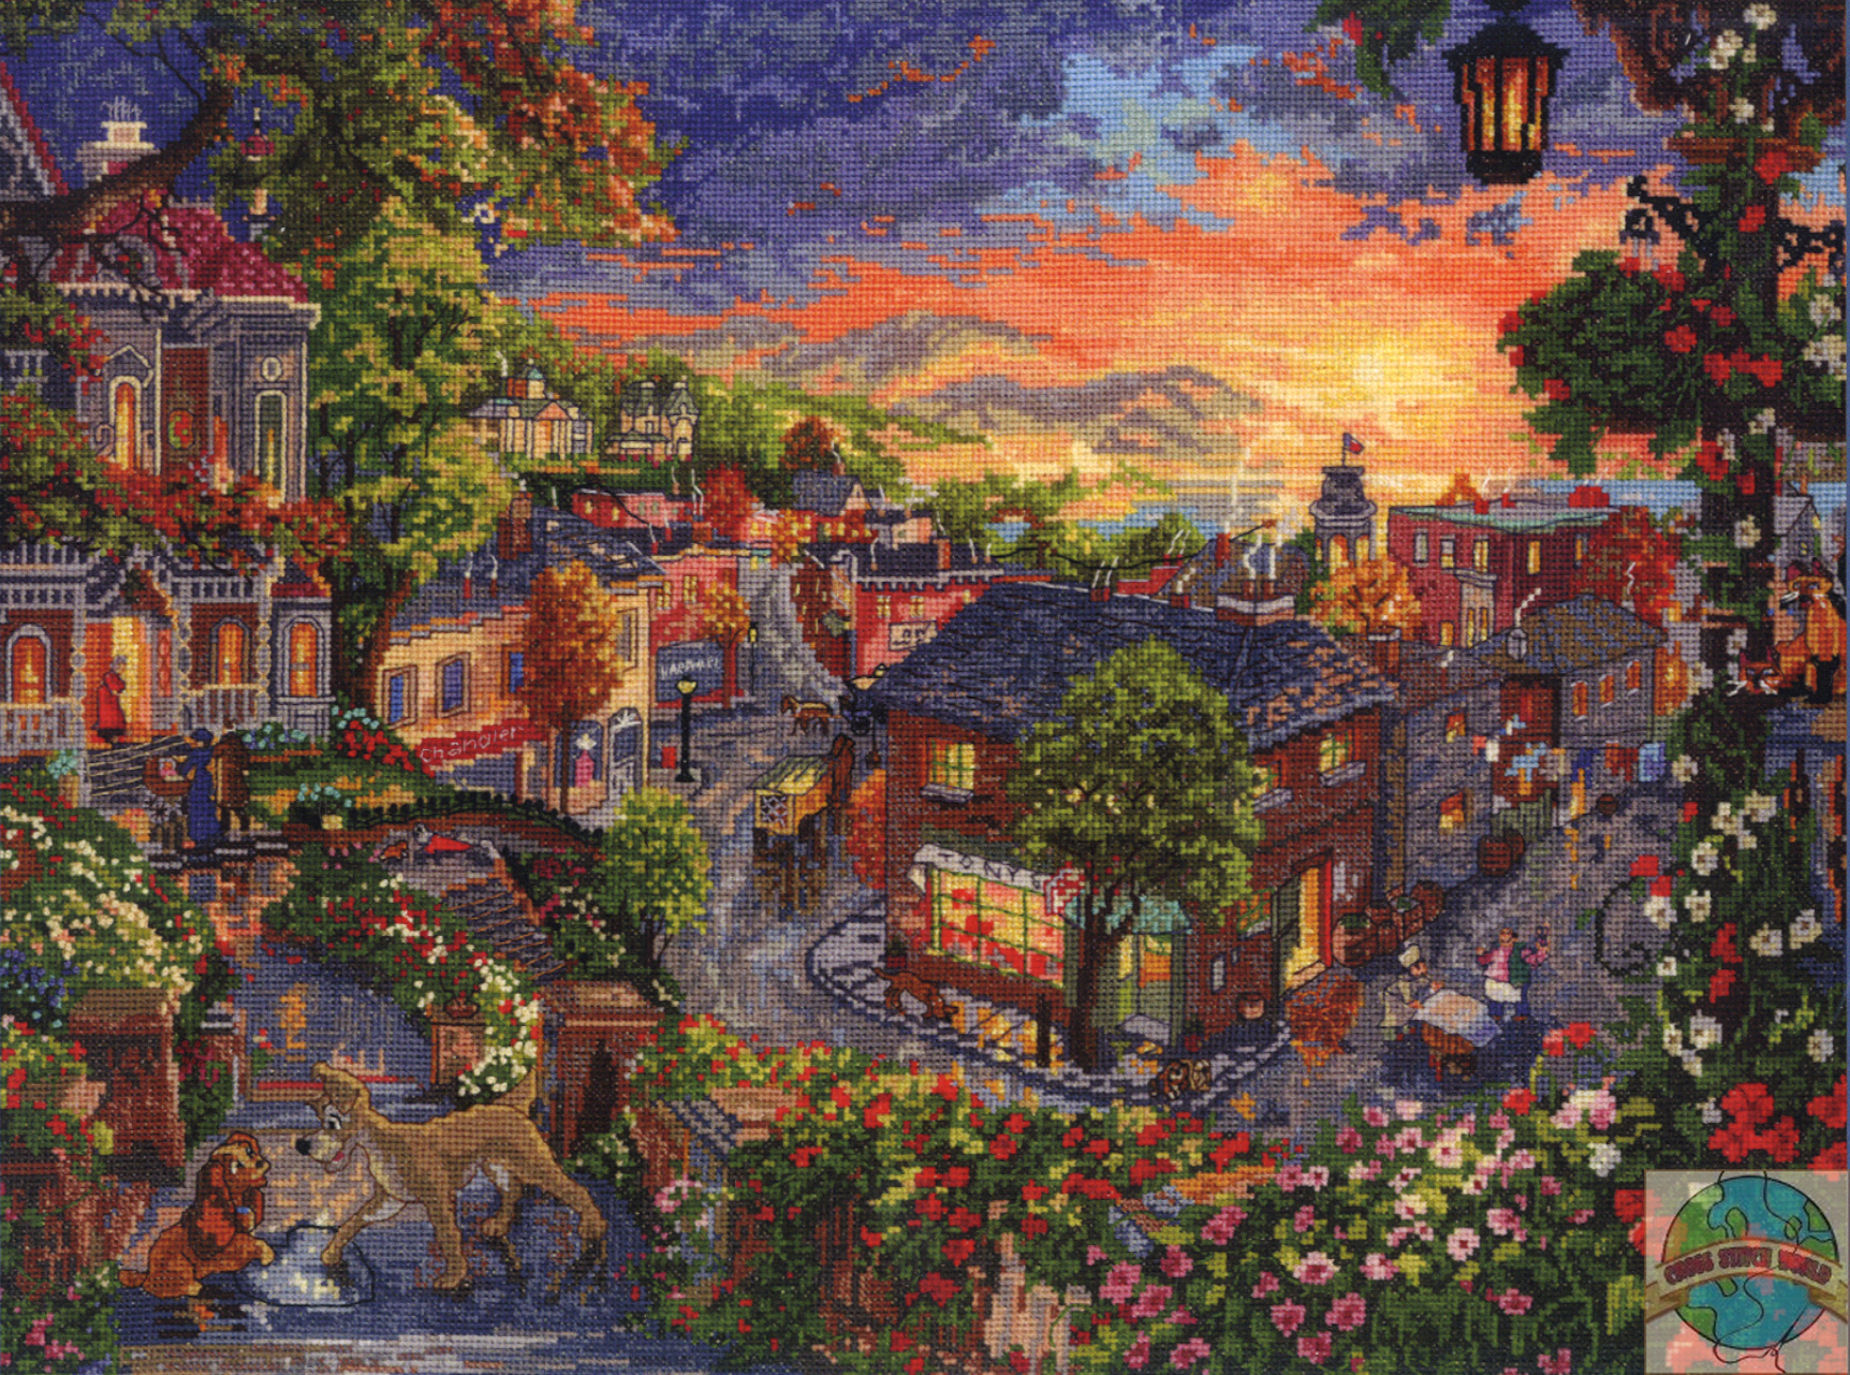 Thomas Kinkade Disney Wallpaper Tangled   Viewing Gallery 1850x1375